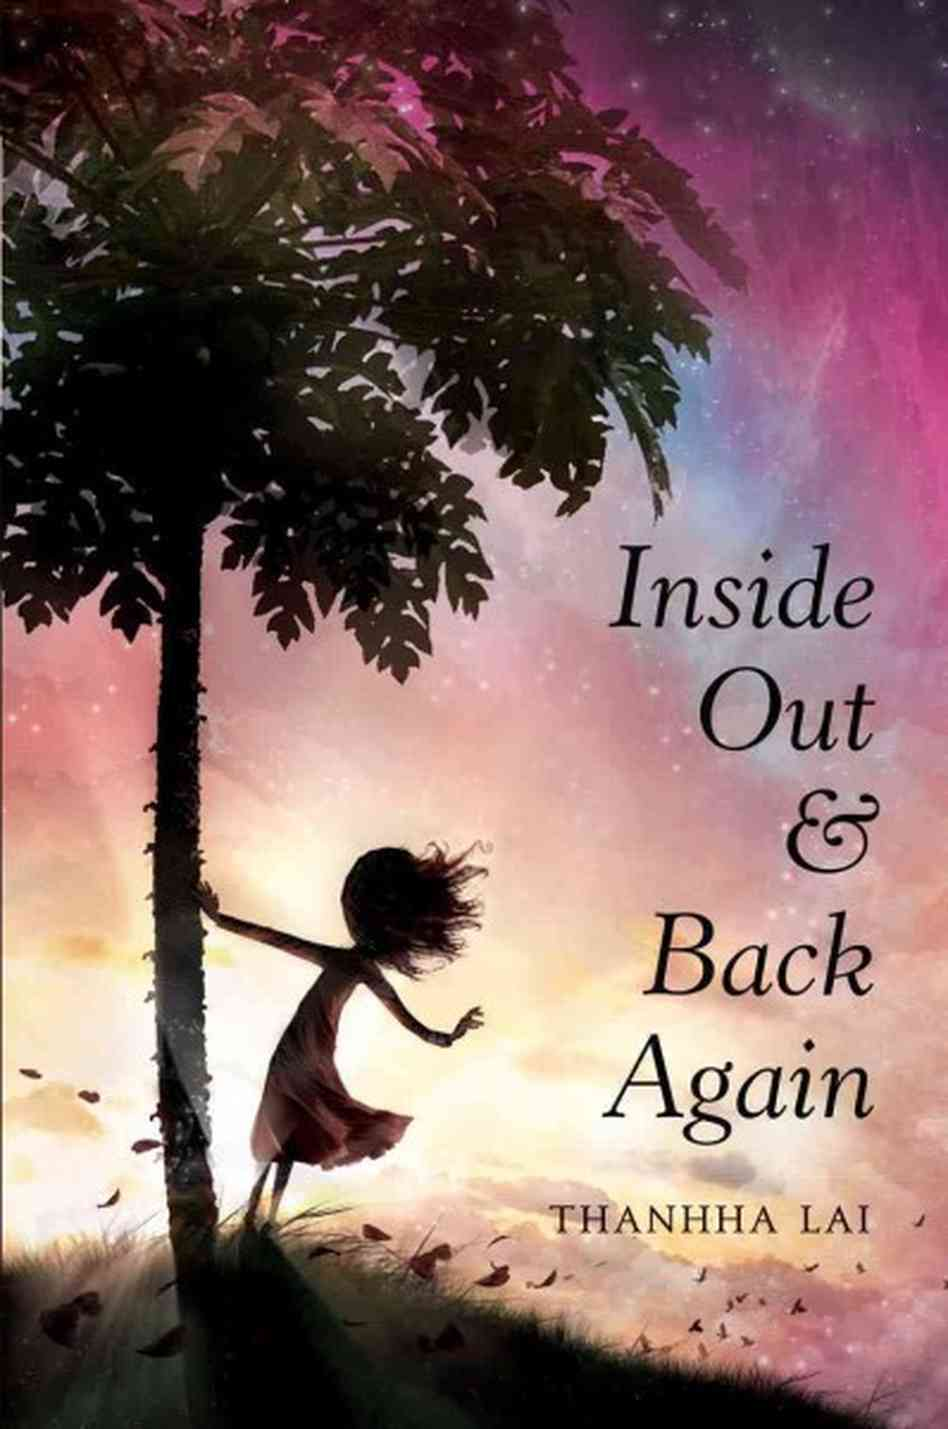 Inside Out and Back Again by Thanhha Lai in OutlooK-12 Magazine